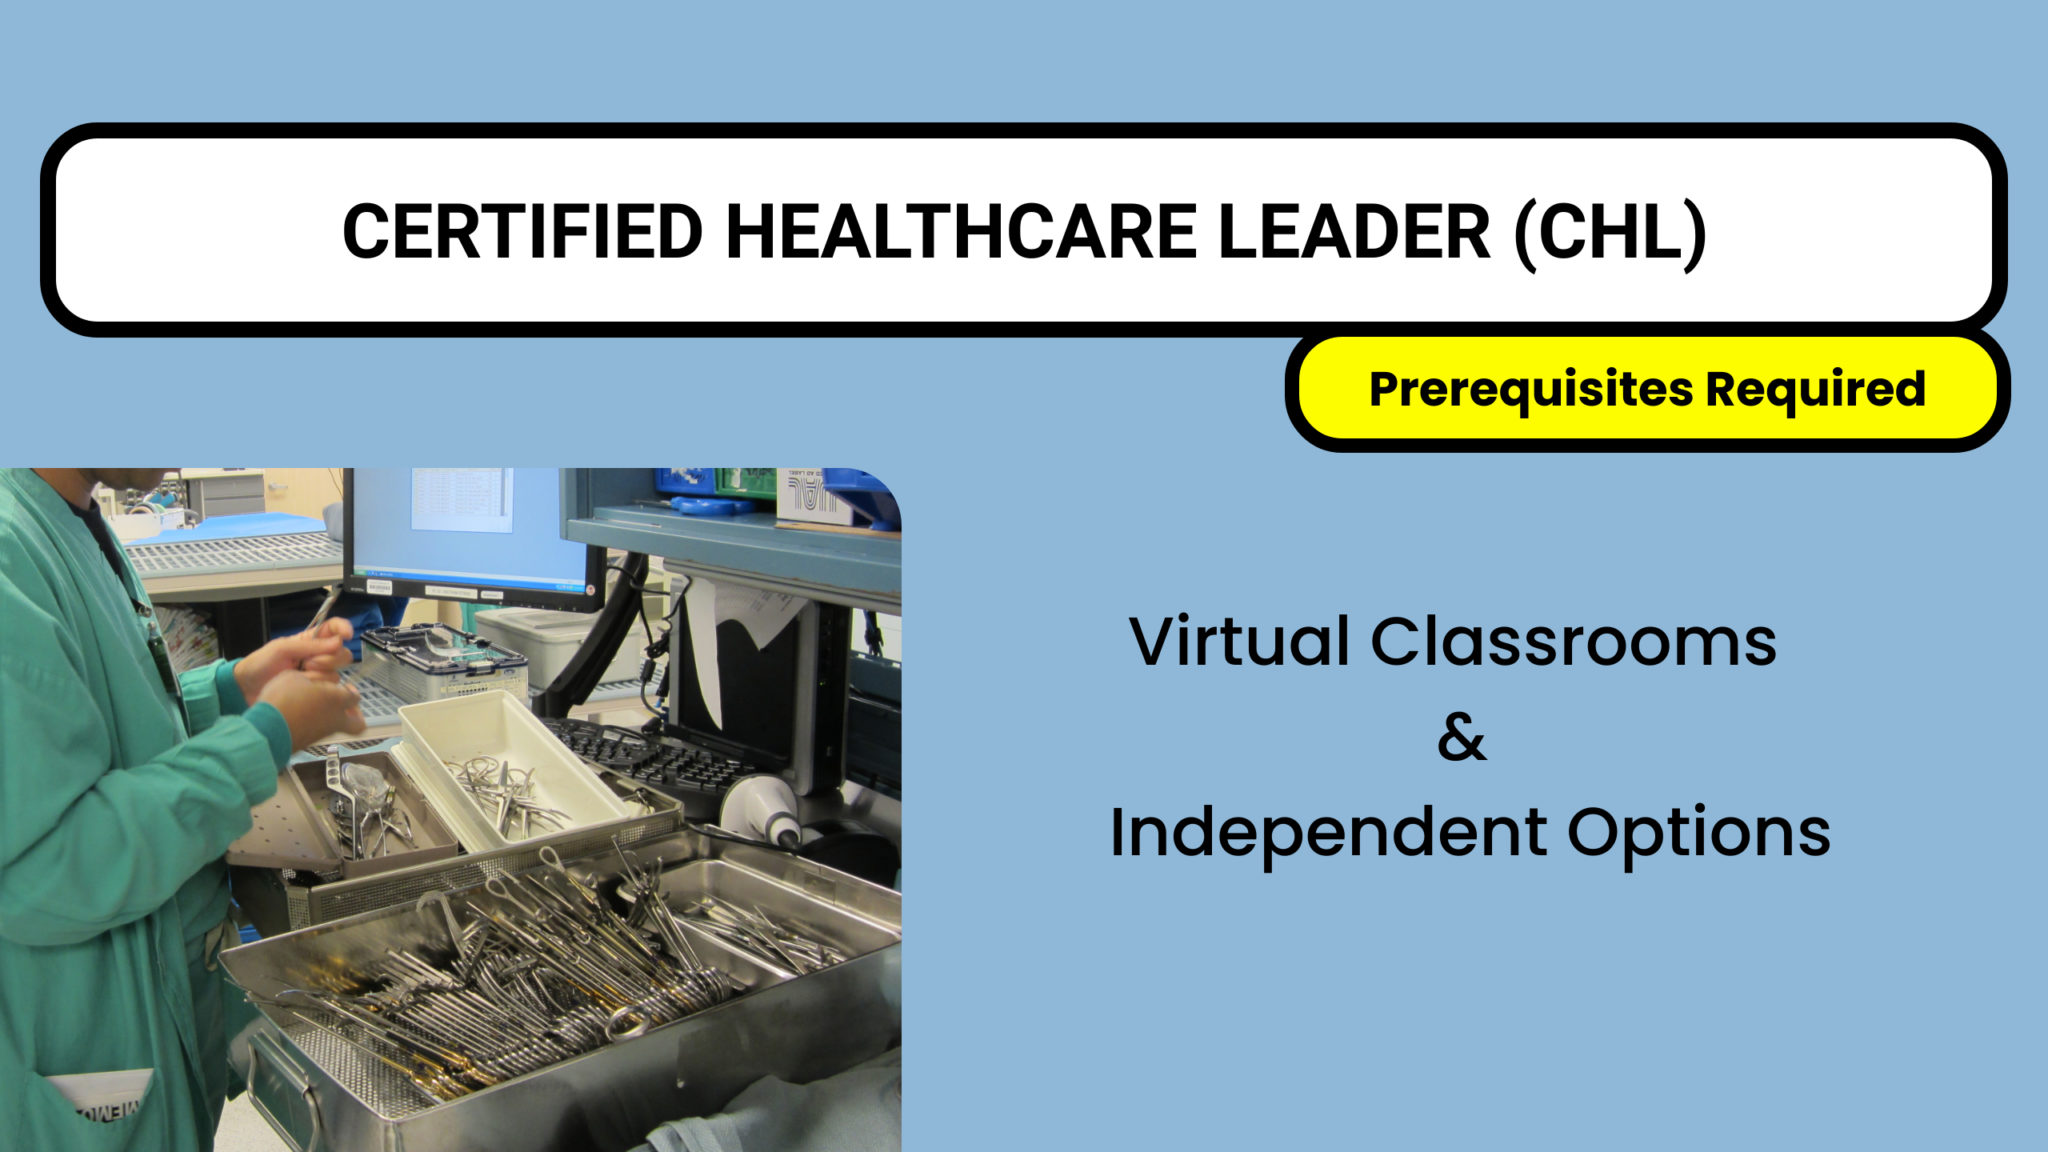 CERTIFIED HEALTHCARE LEADER (CHL)